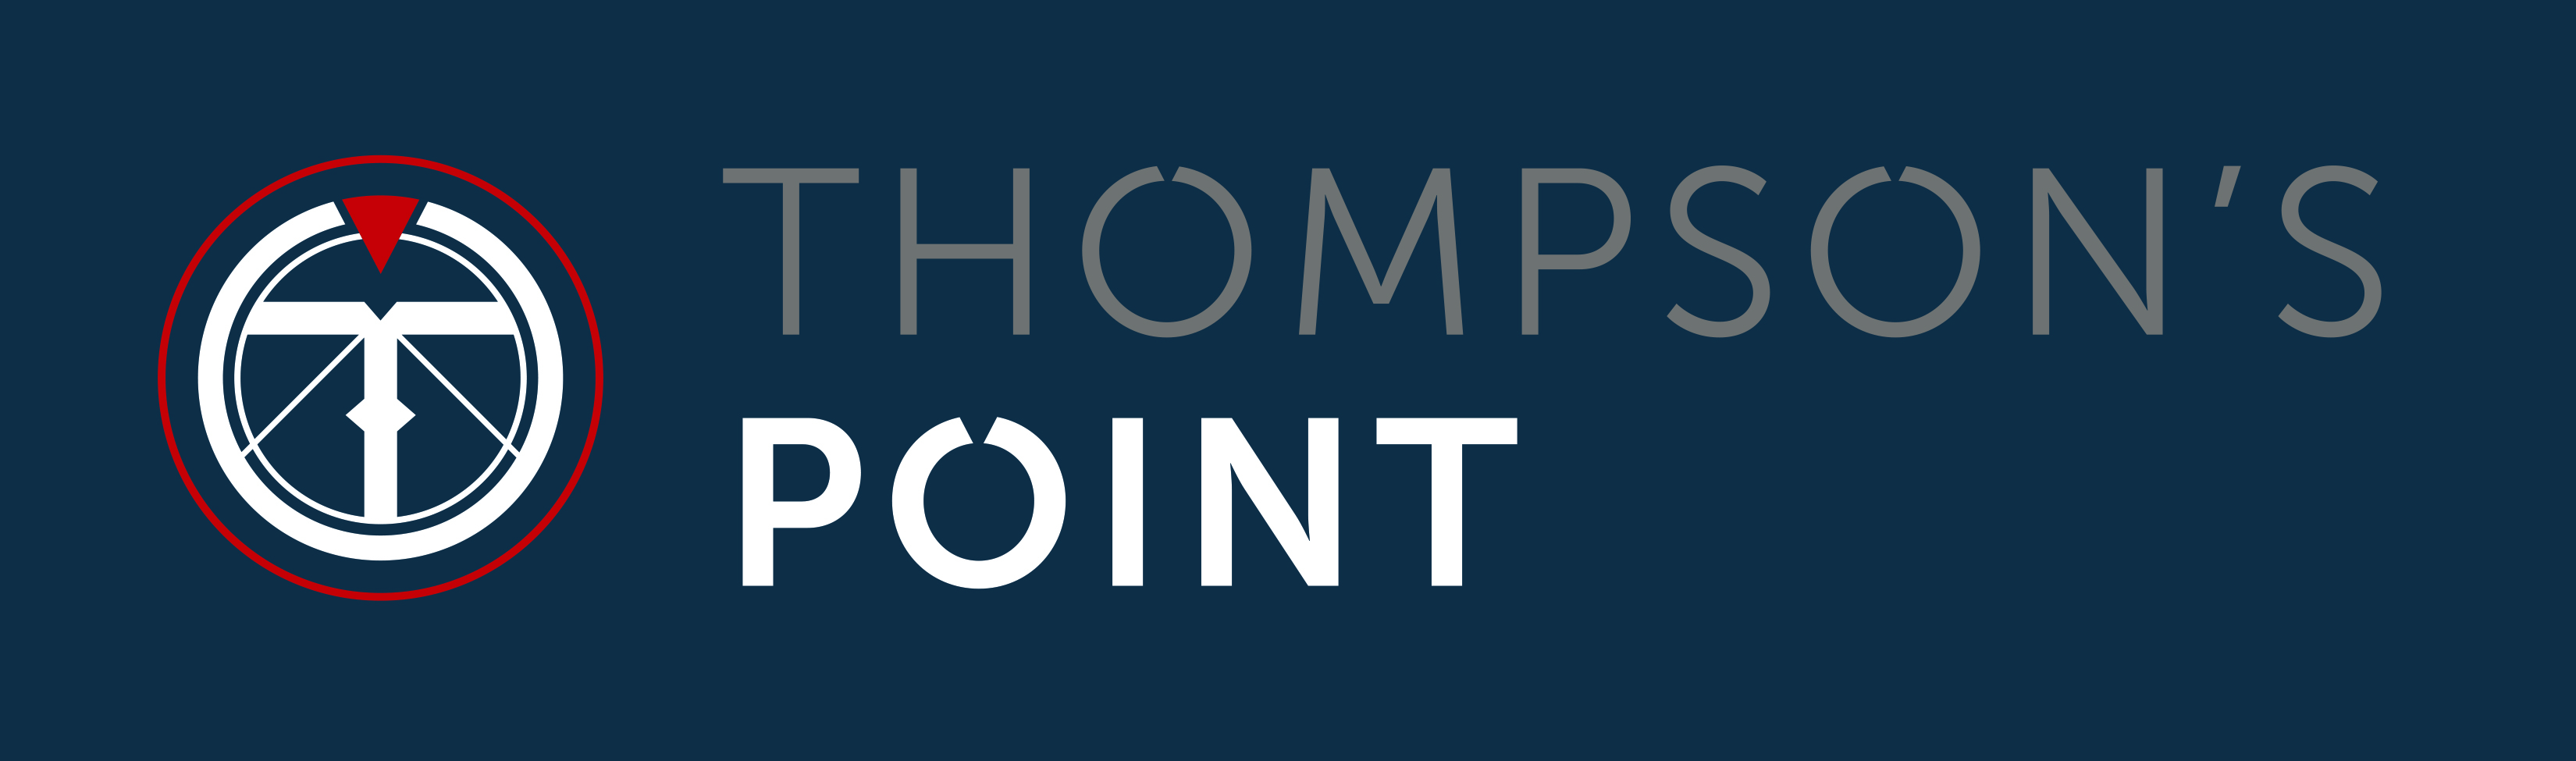 ThompsonsPoint_logo_bluebkg